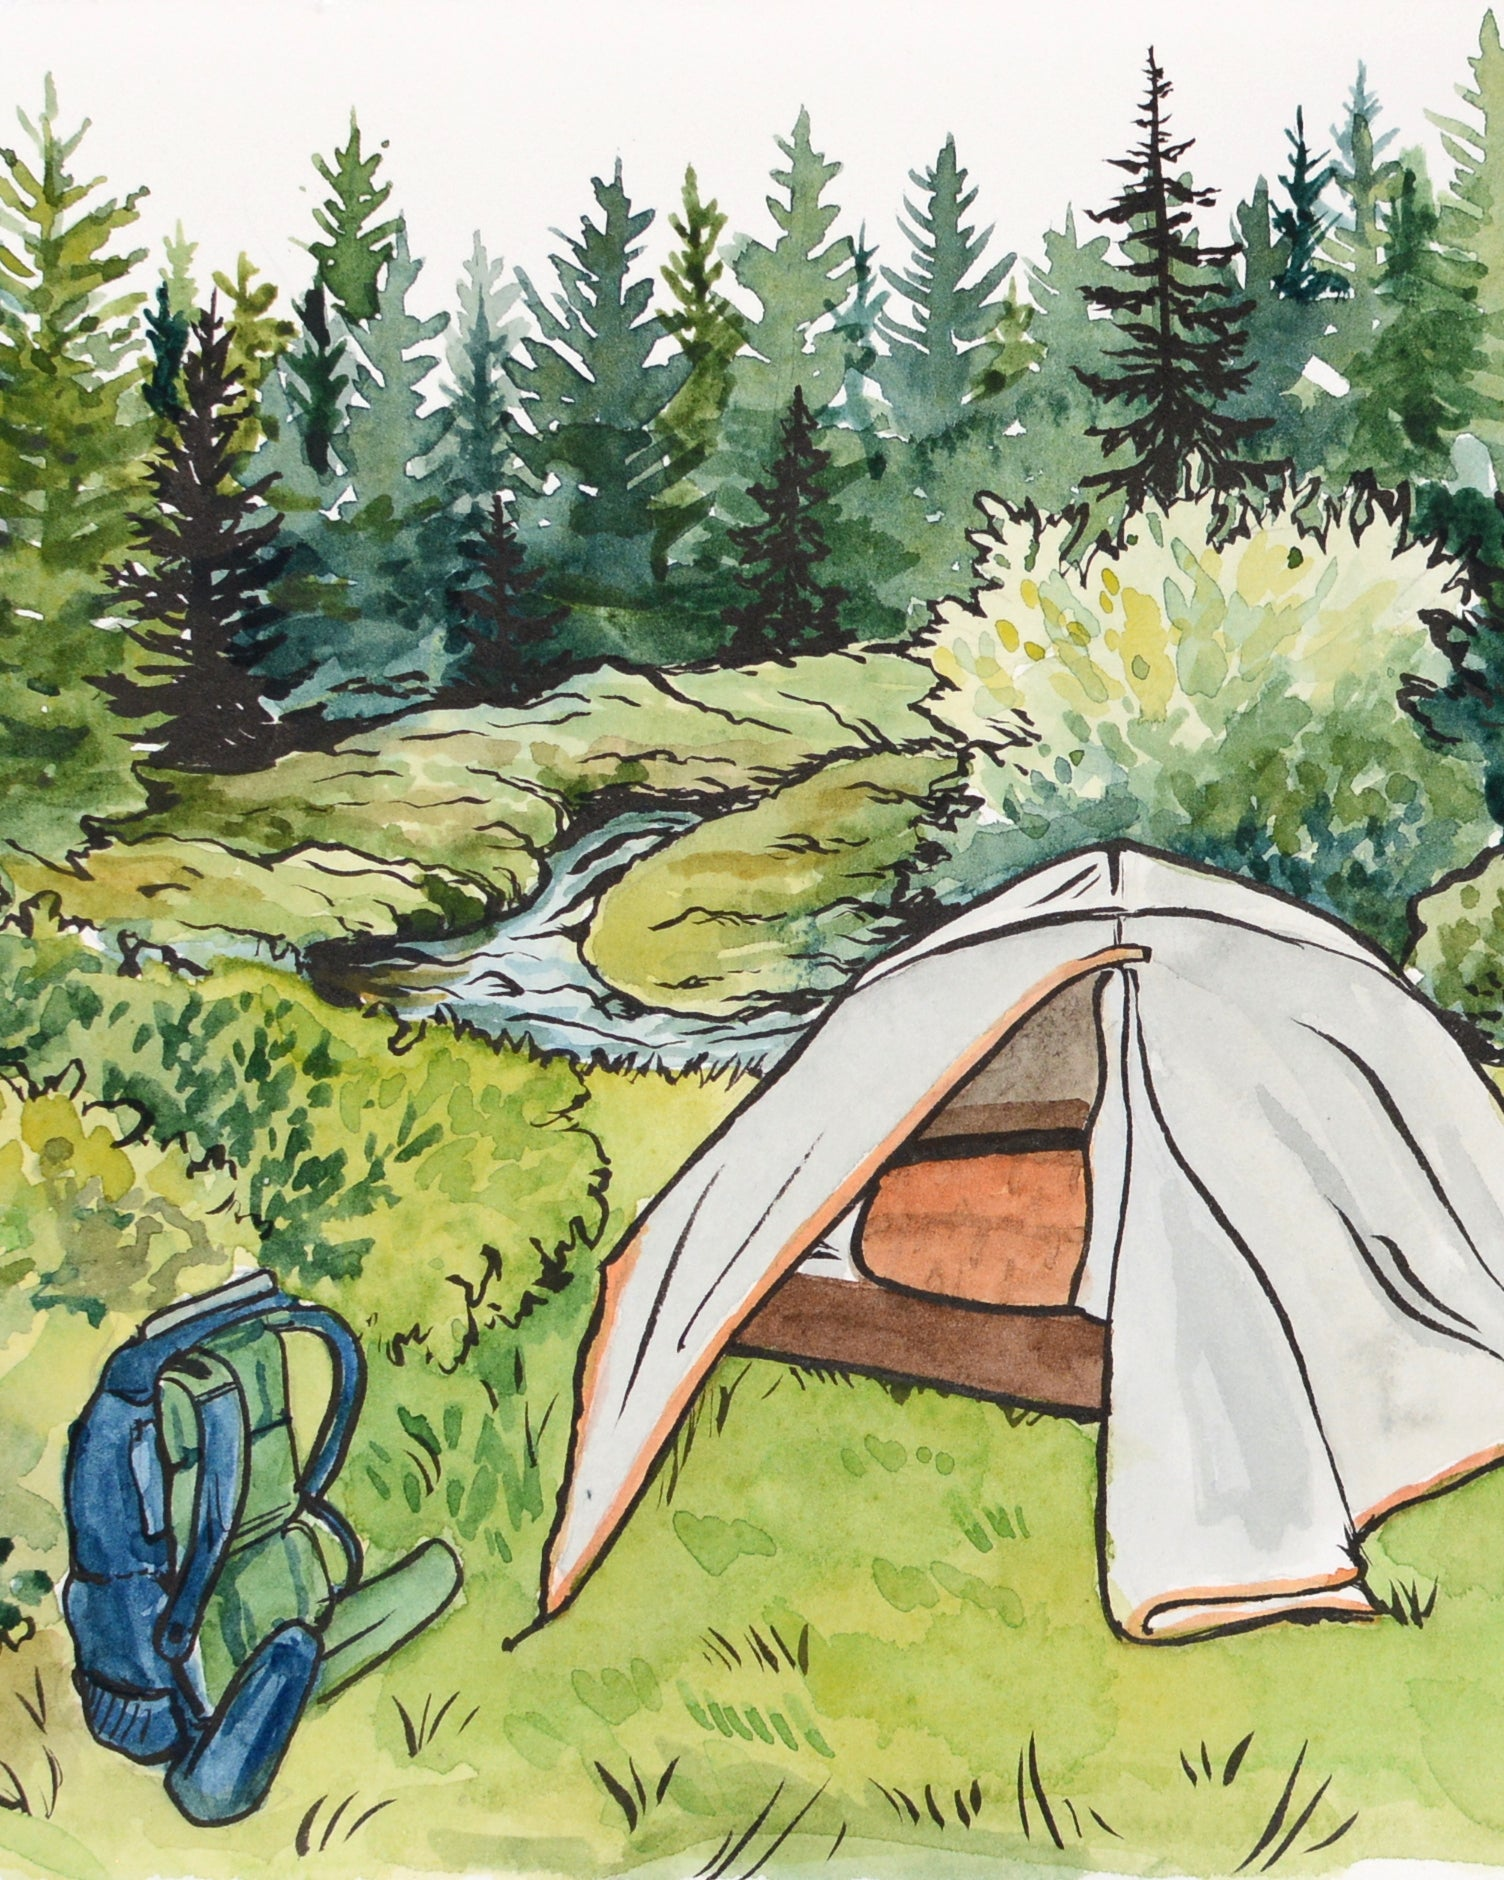 "Campsite in Dolly Sods - Original Painting - 10.5x7"" - Kim Everhard Art"